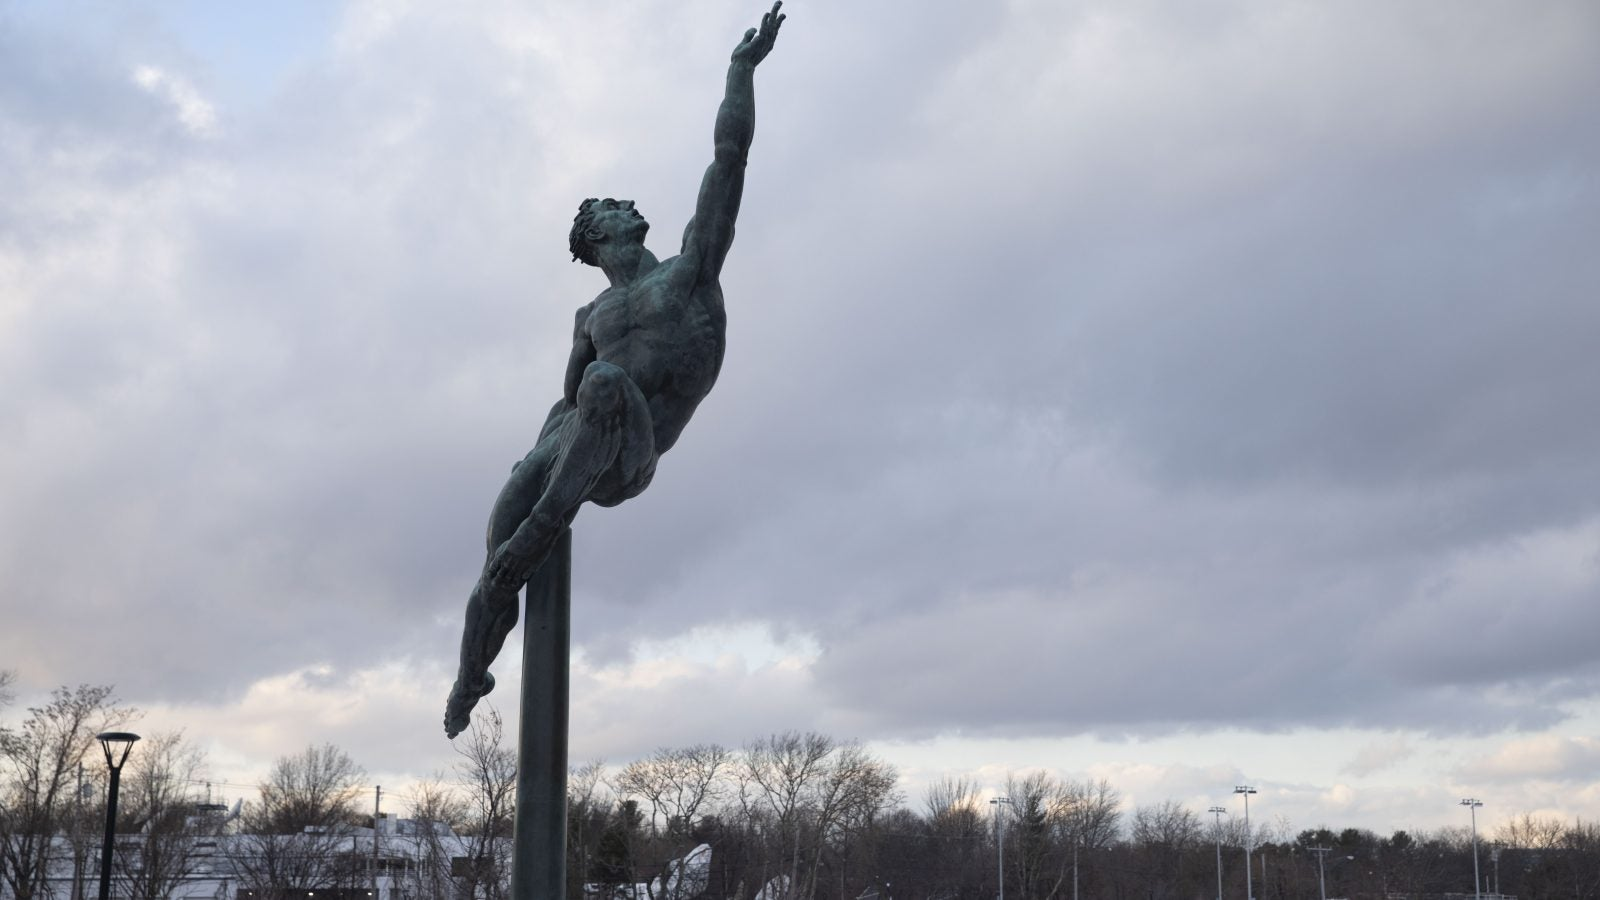 A statue of someone leaping and reaching to the heavens.